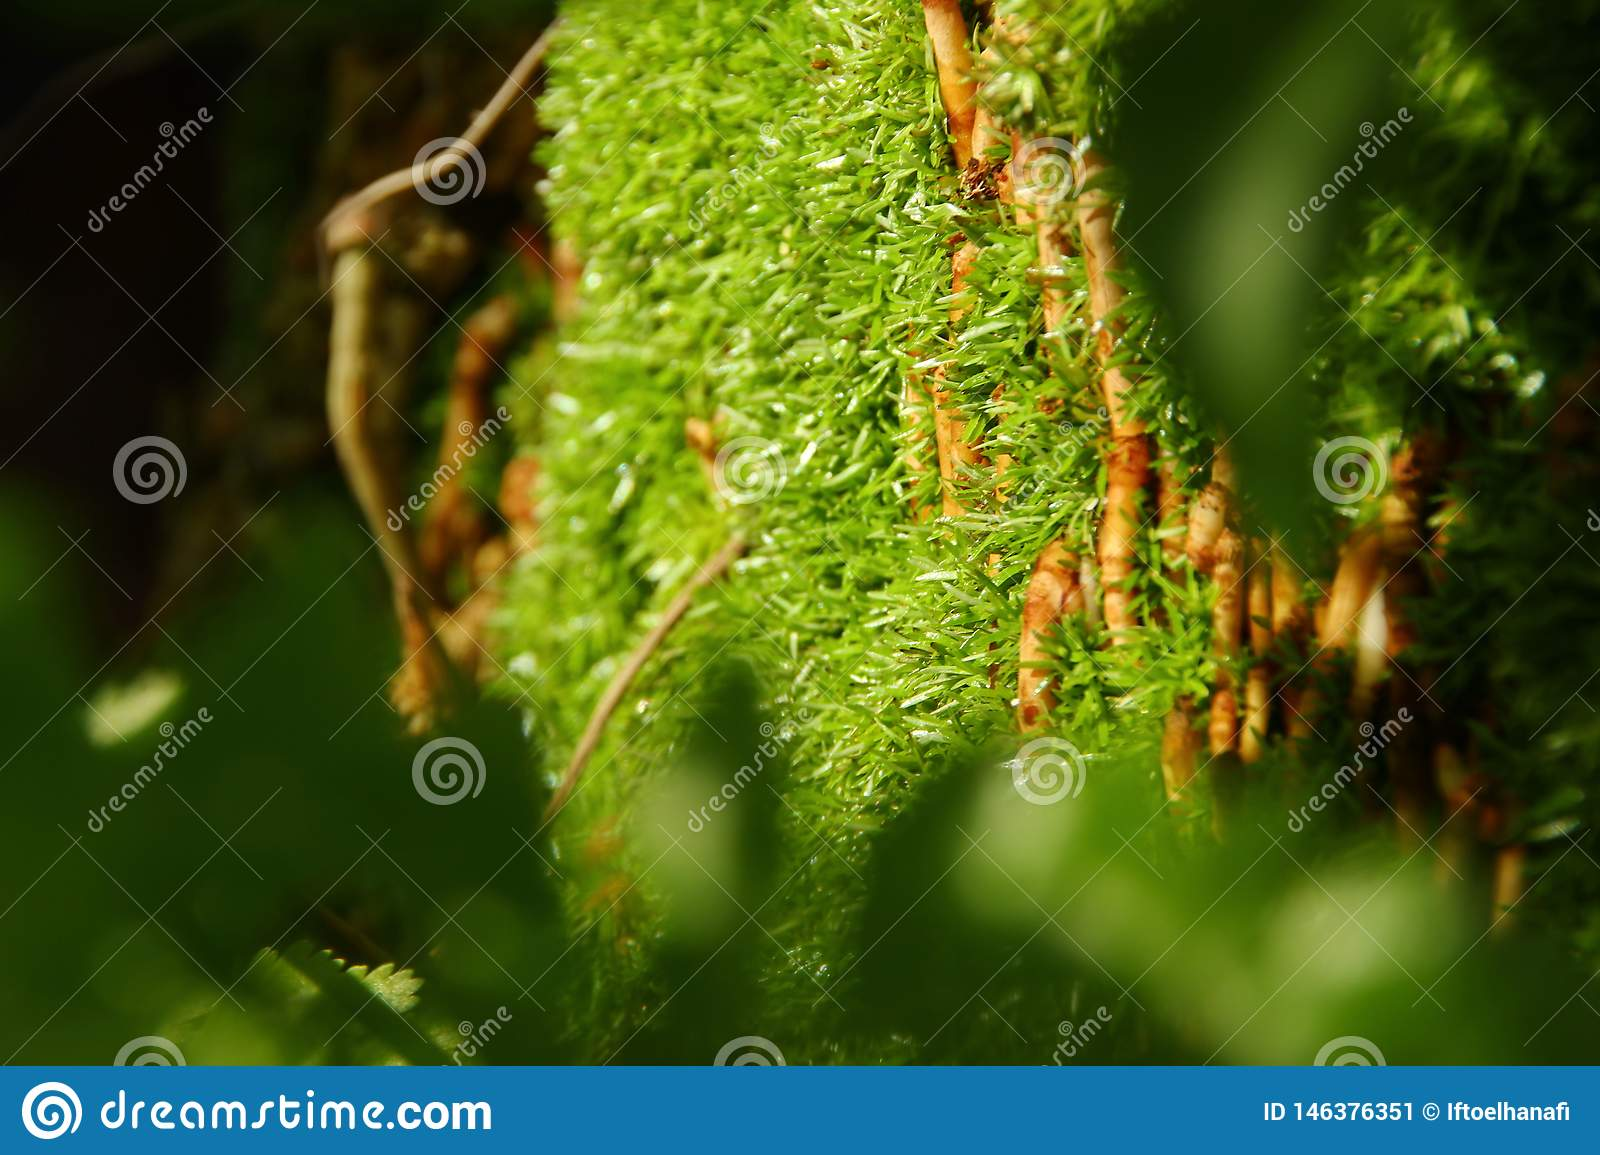 Moss attached to a tree, by taking some focus,